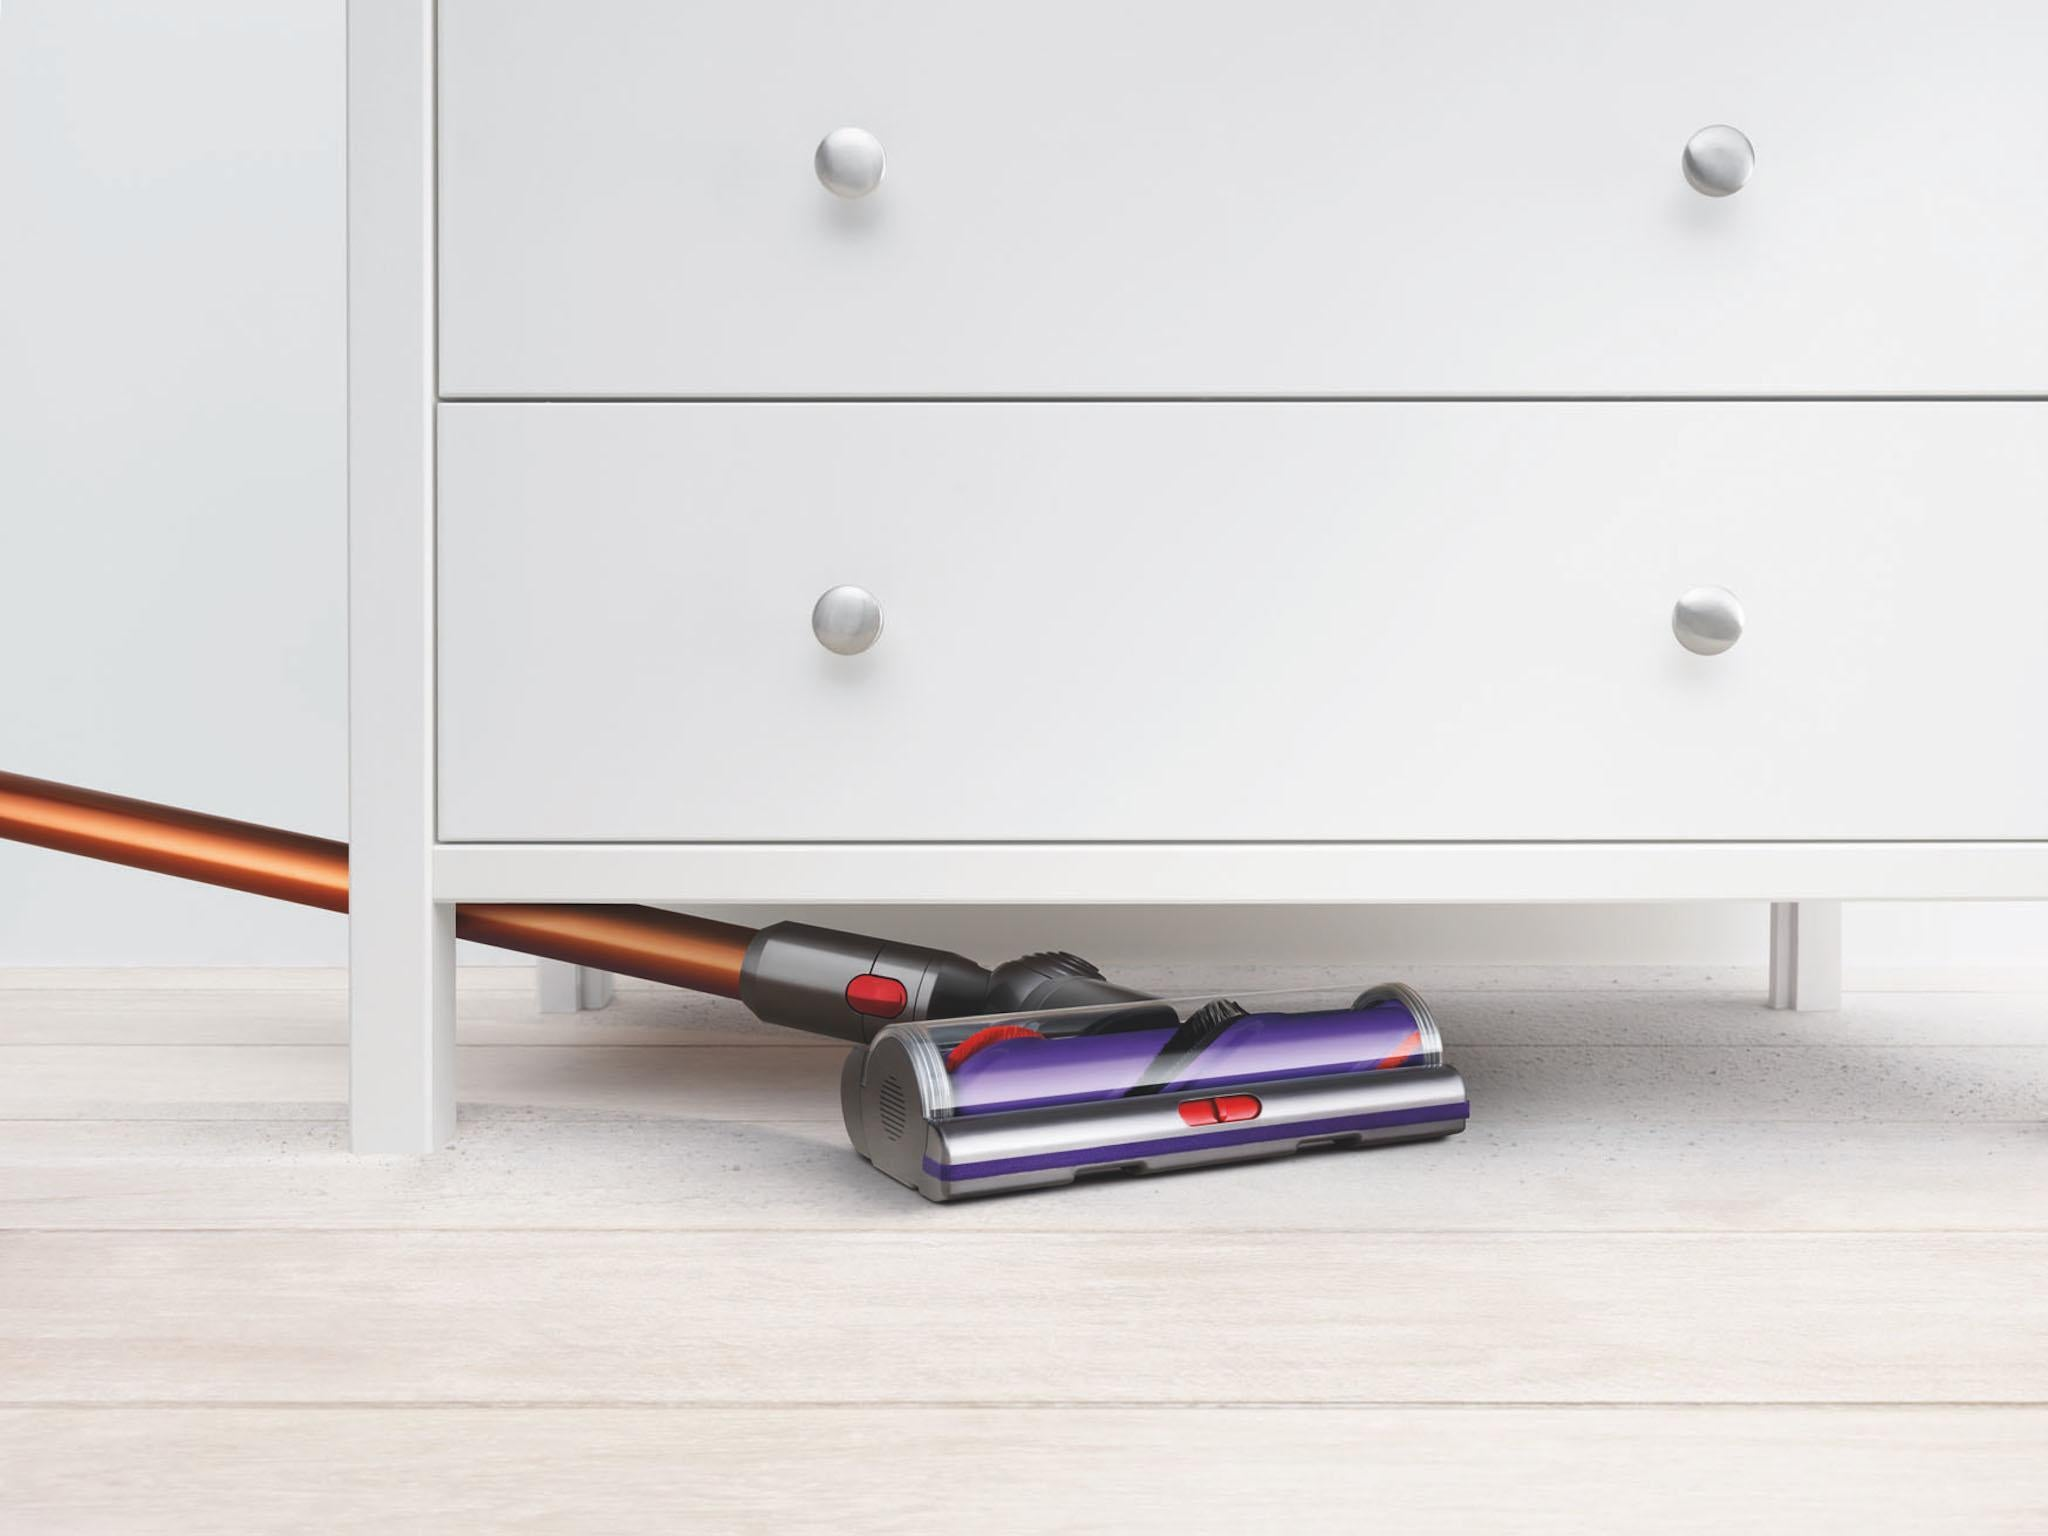 Dyson Says It Is No Longer Making Plug In Vacuums As Concentrates Wiring A Vacuum On Cord Free Models And Air Purifiers The Independent